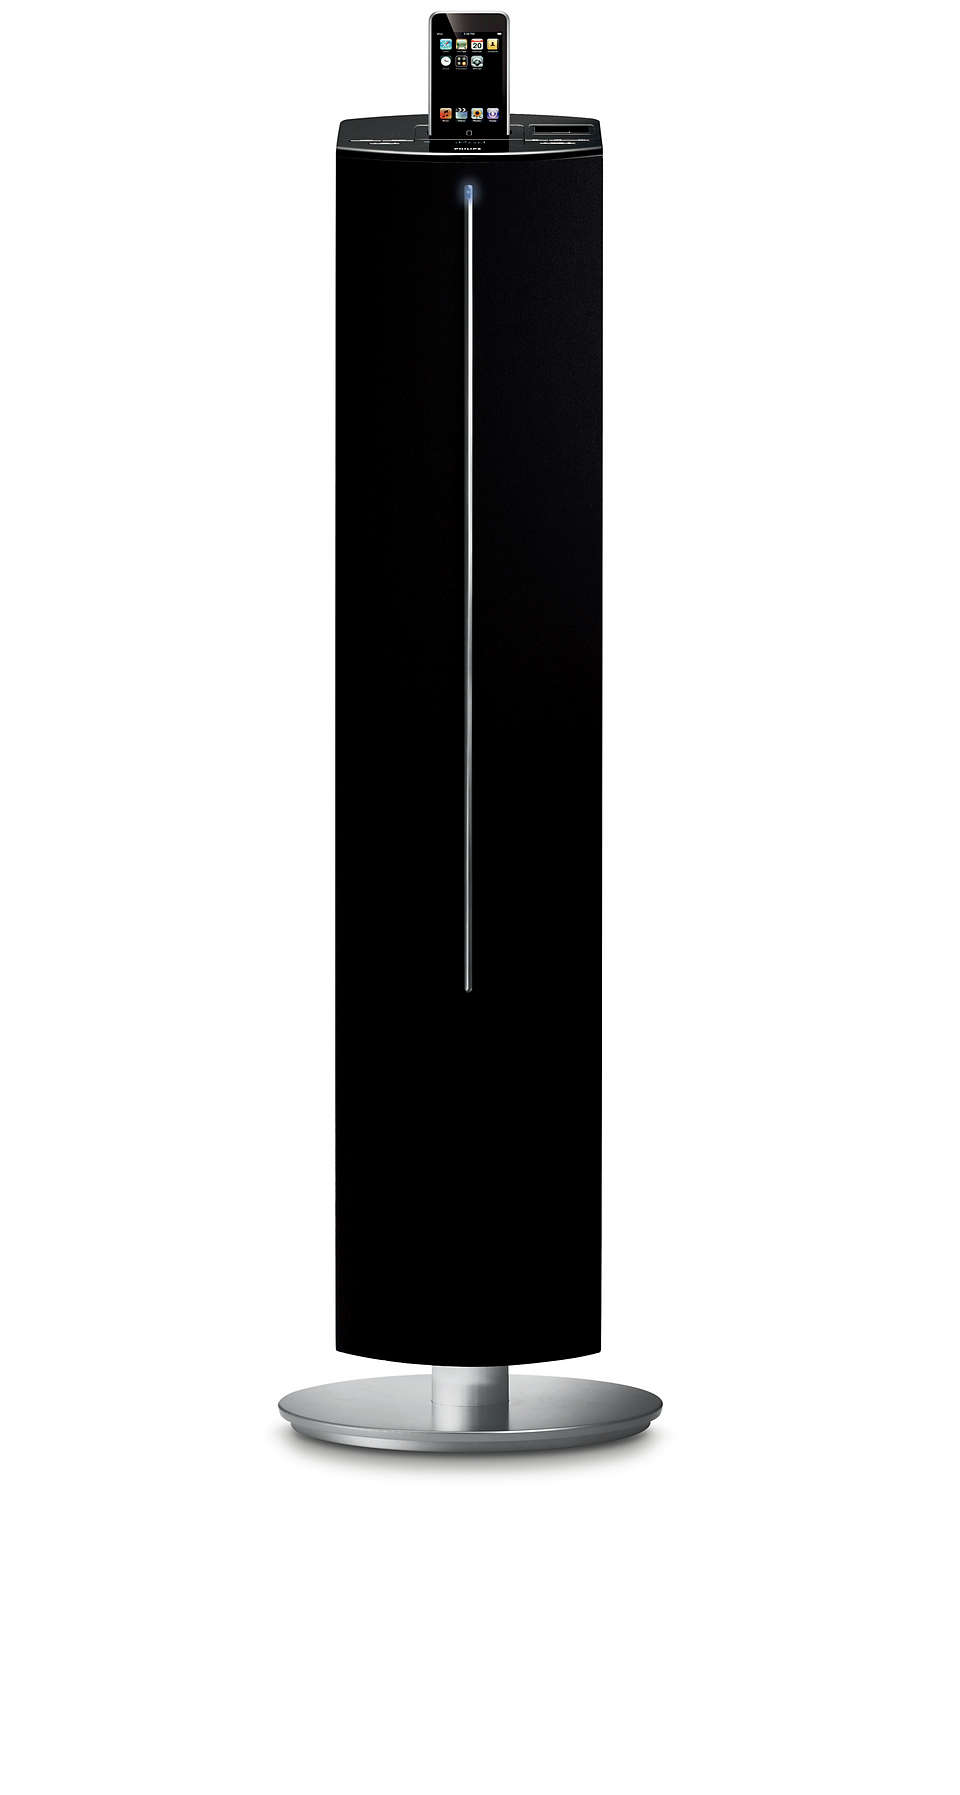 Enjoy iPod music out loud with speaker tower